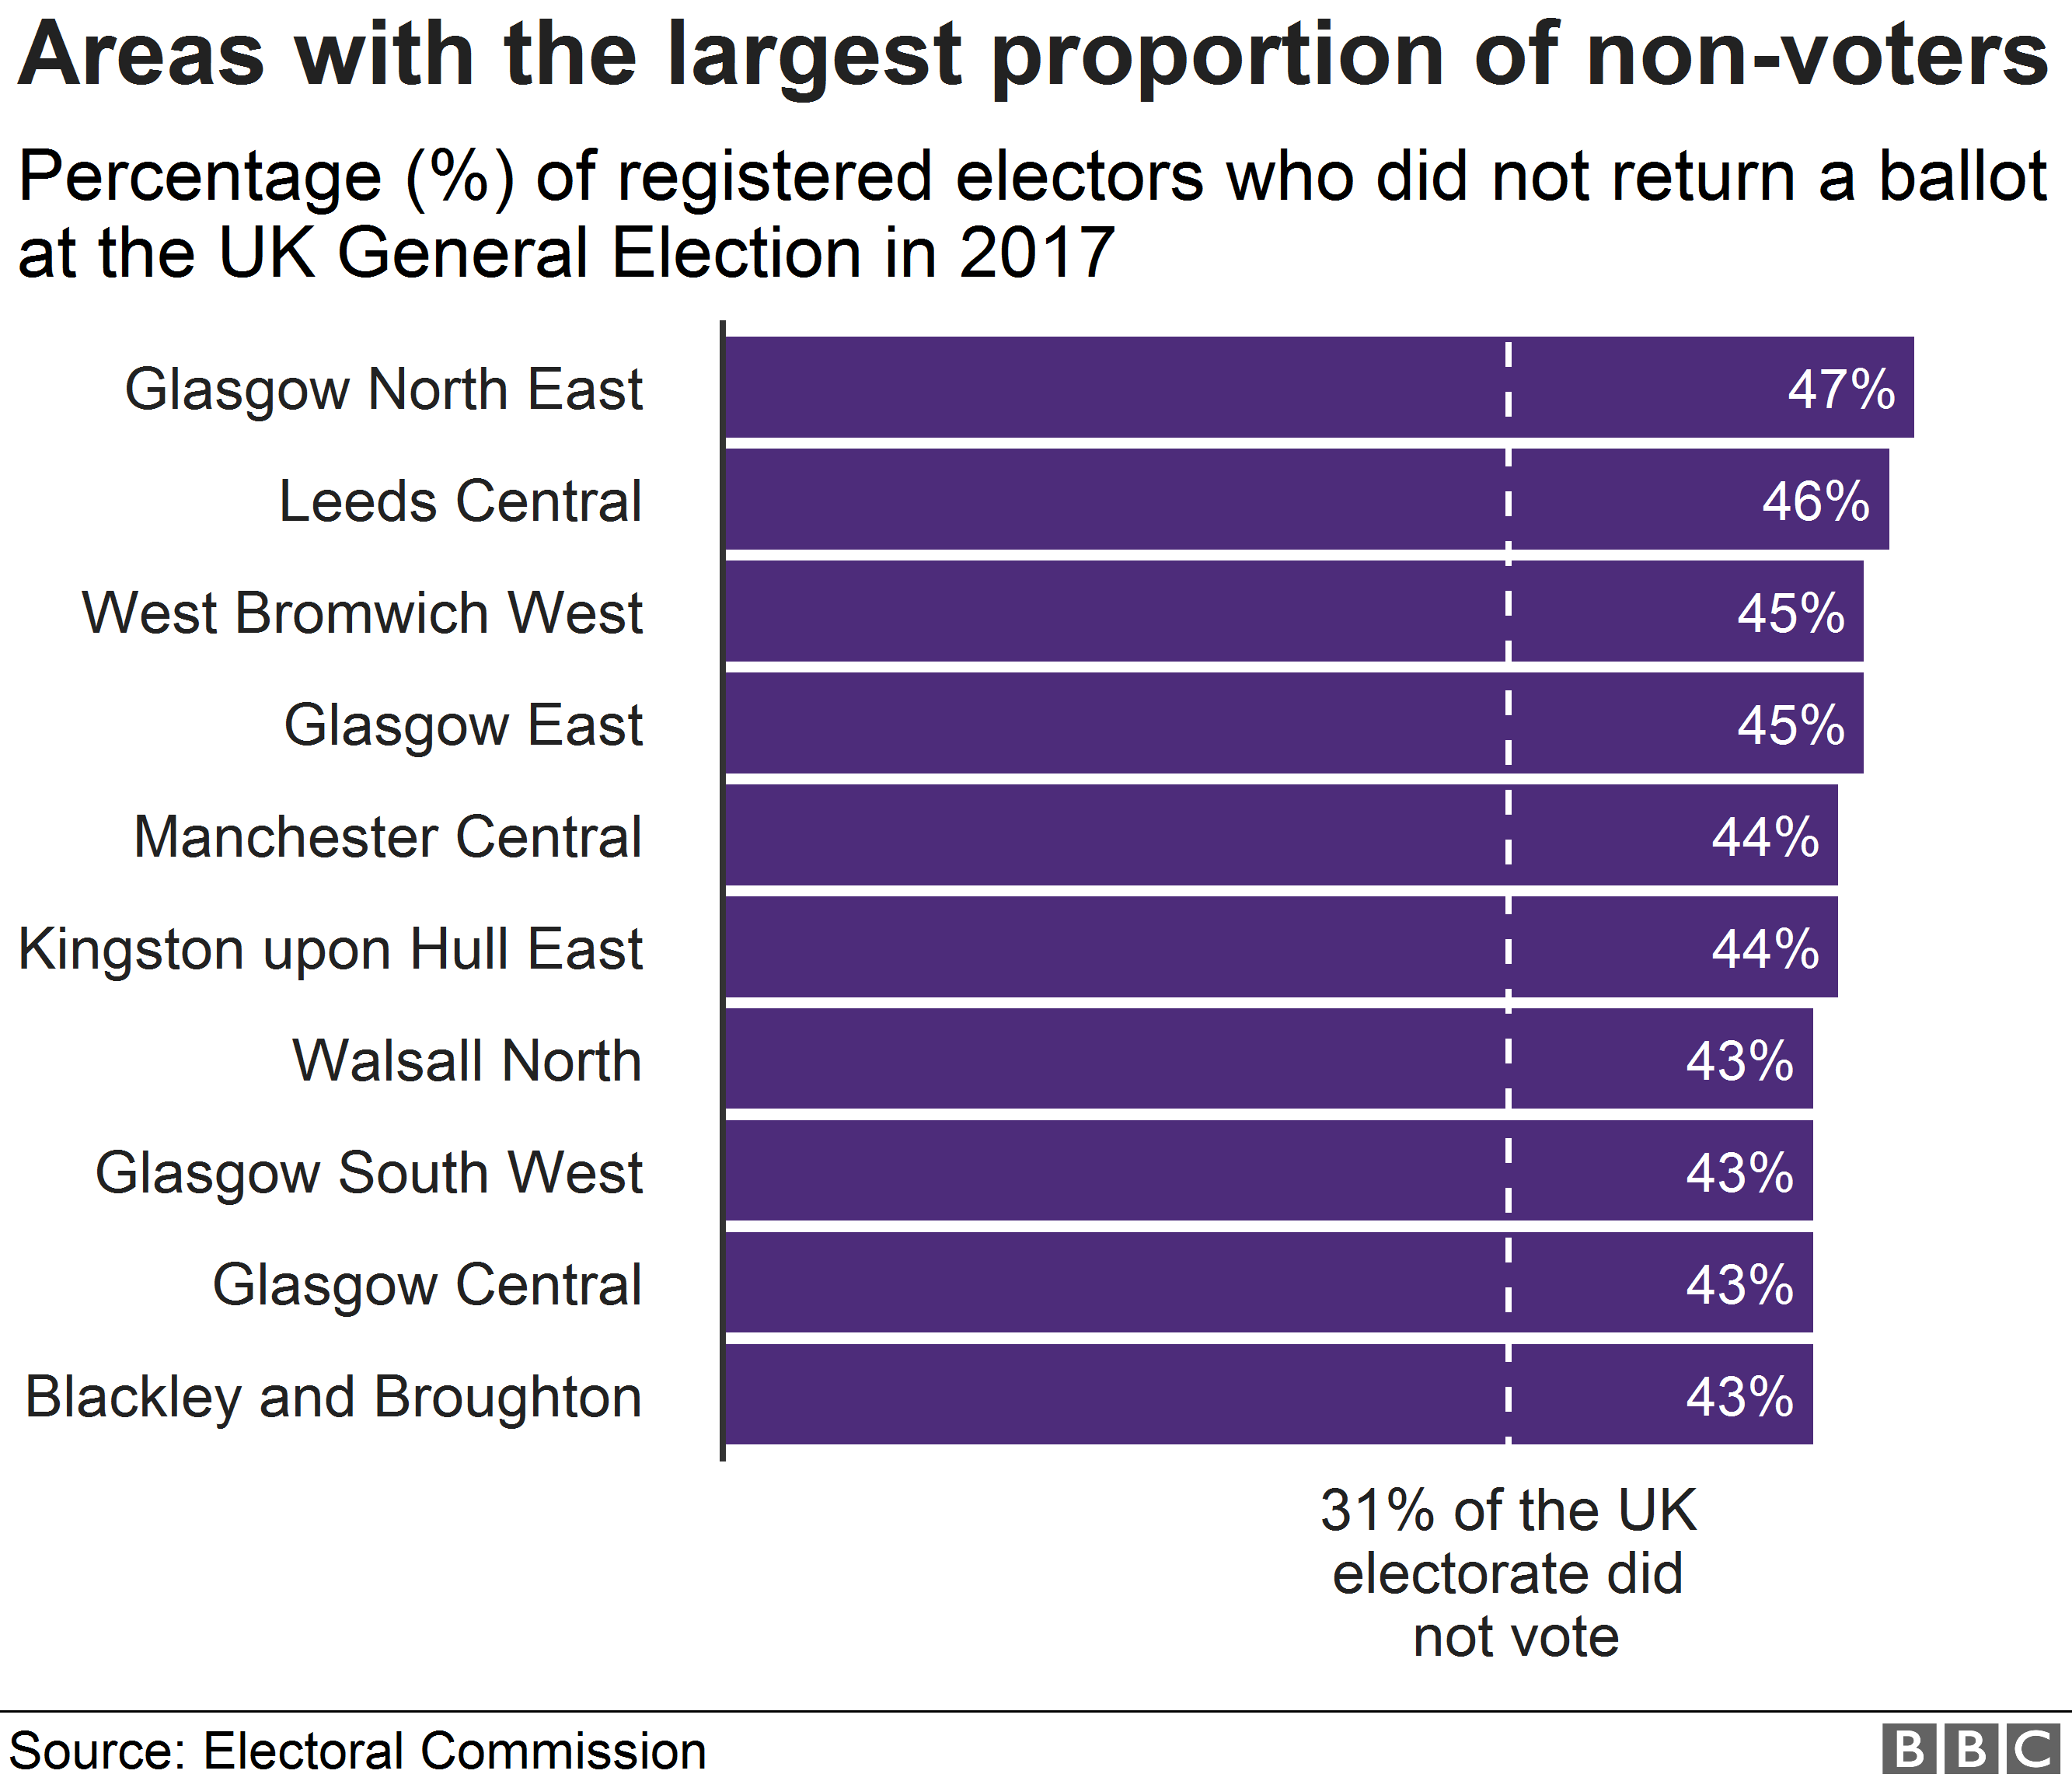 Chart showing areas with the highest proportions of non-voters